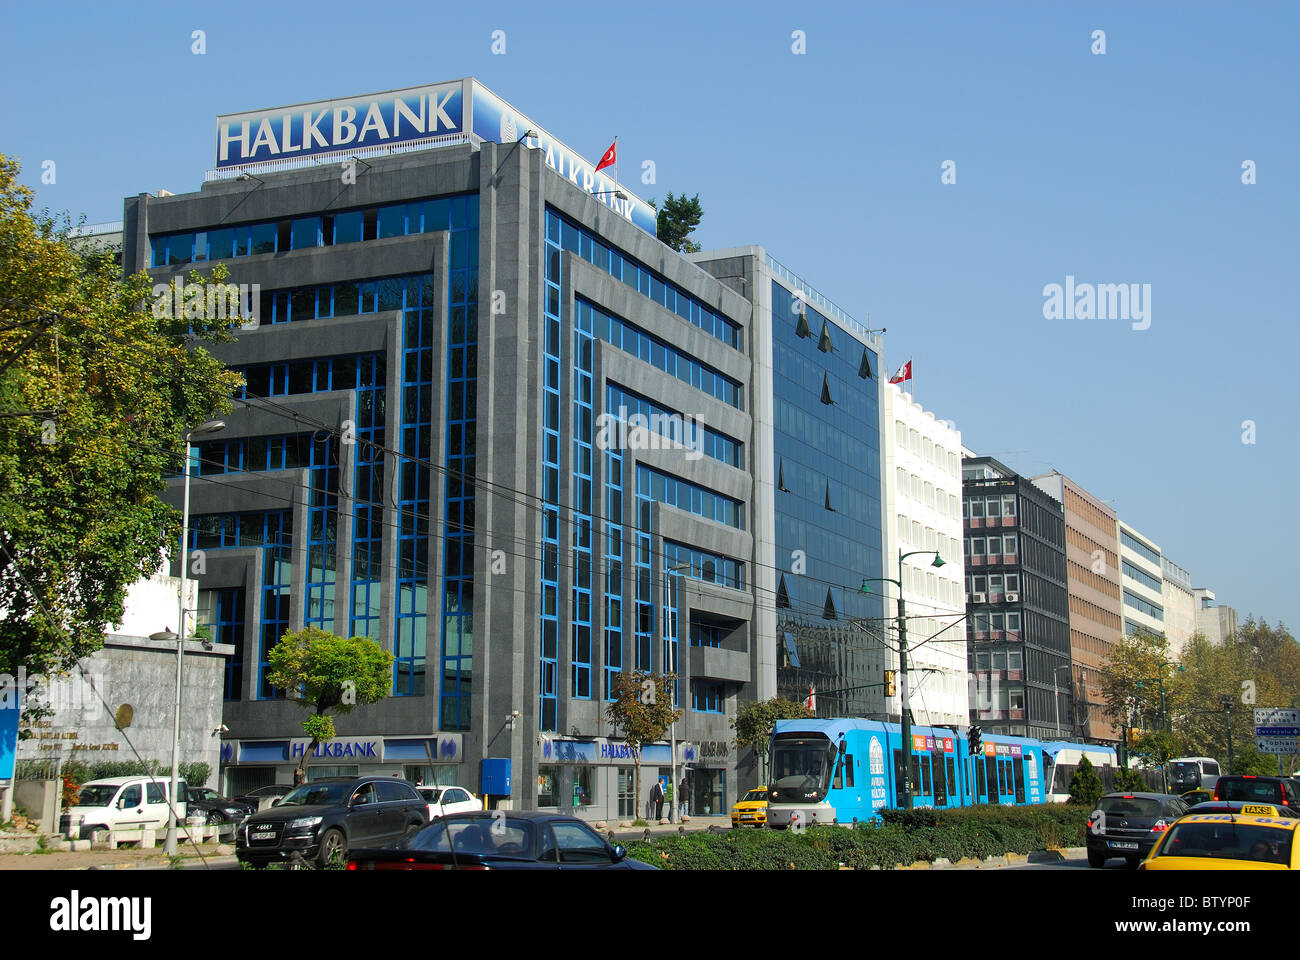 ISTANBUL, TURKEY. Banks and other financial institutions on Necatibey Caddesi in the Tophane district. 2010. Stock Photo